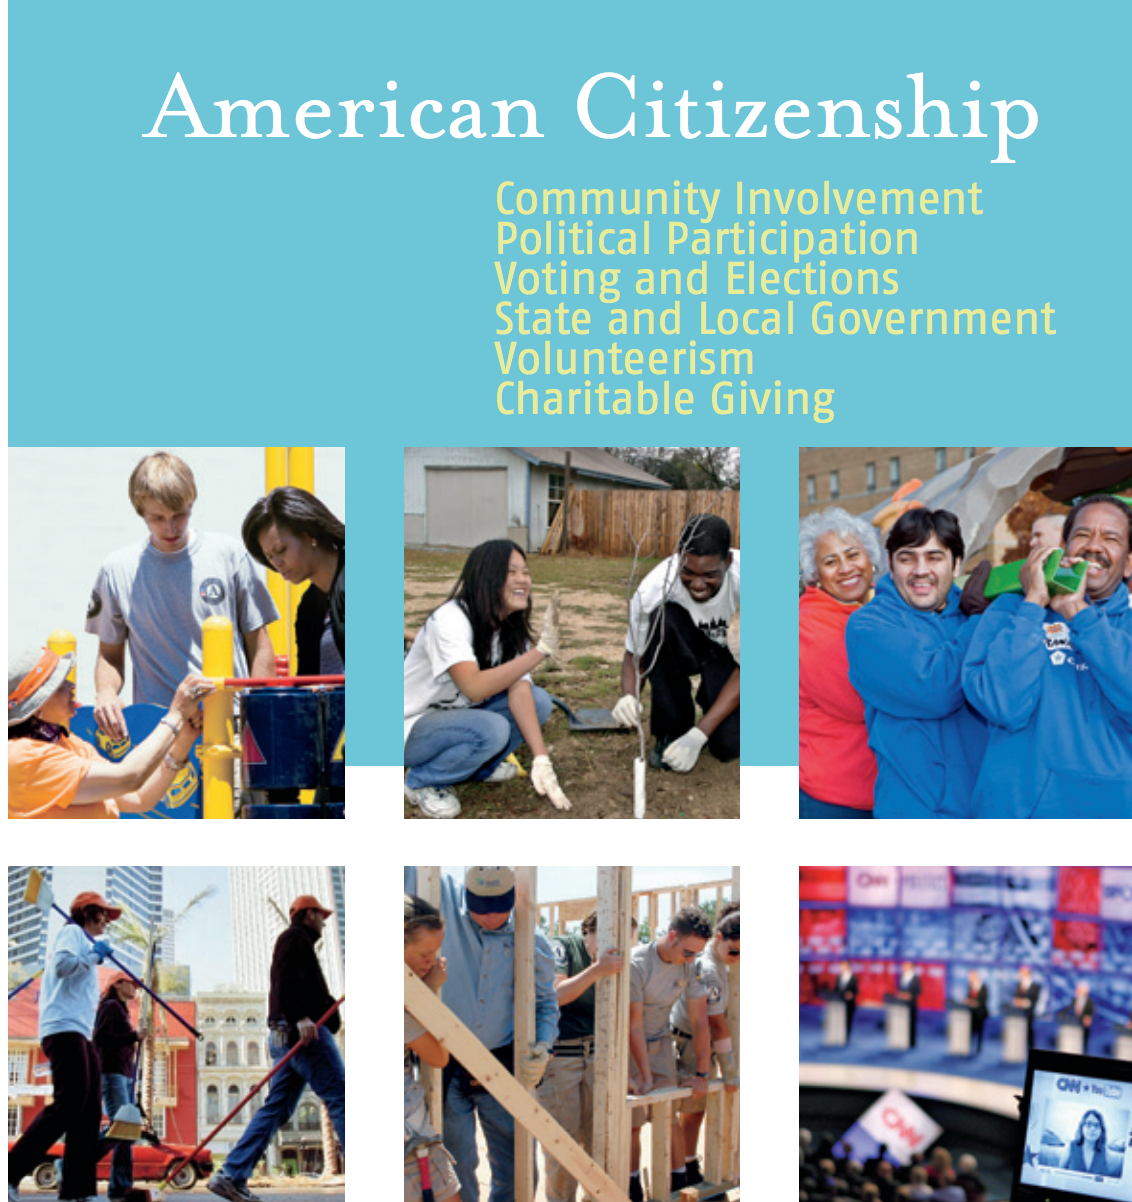 American Citizenship